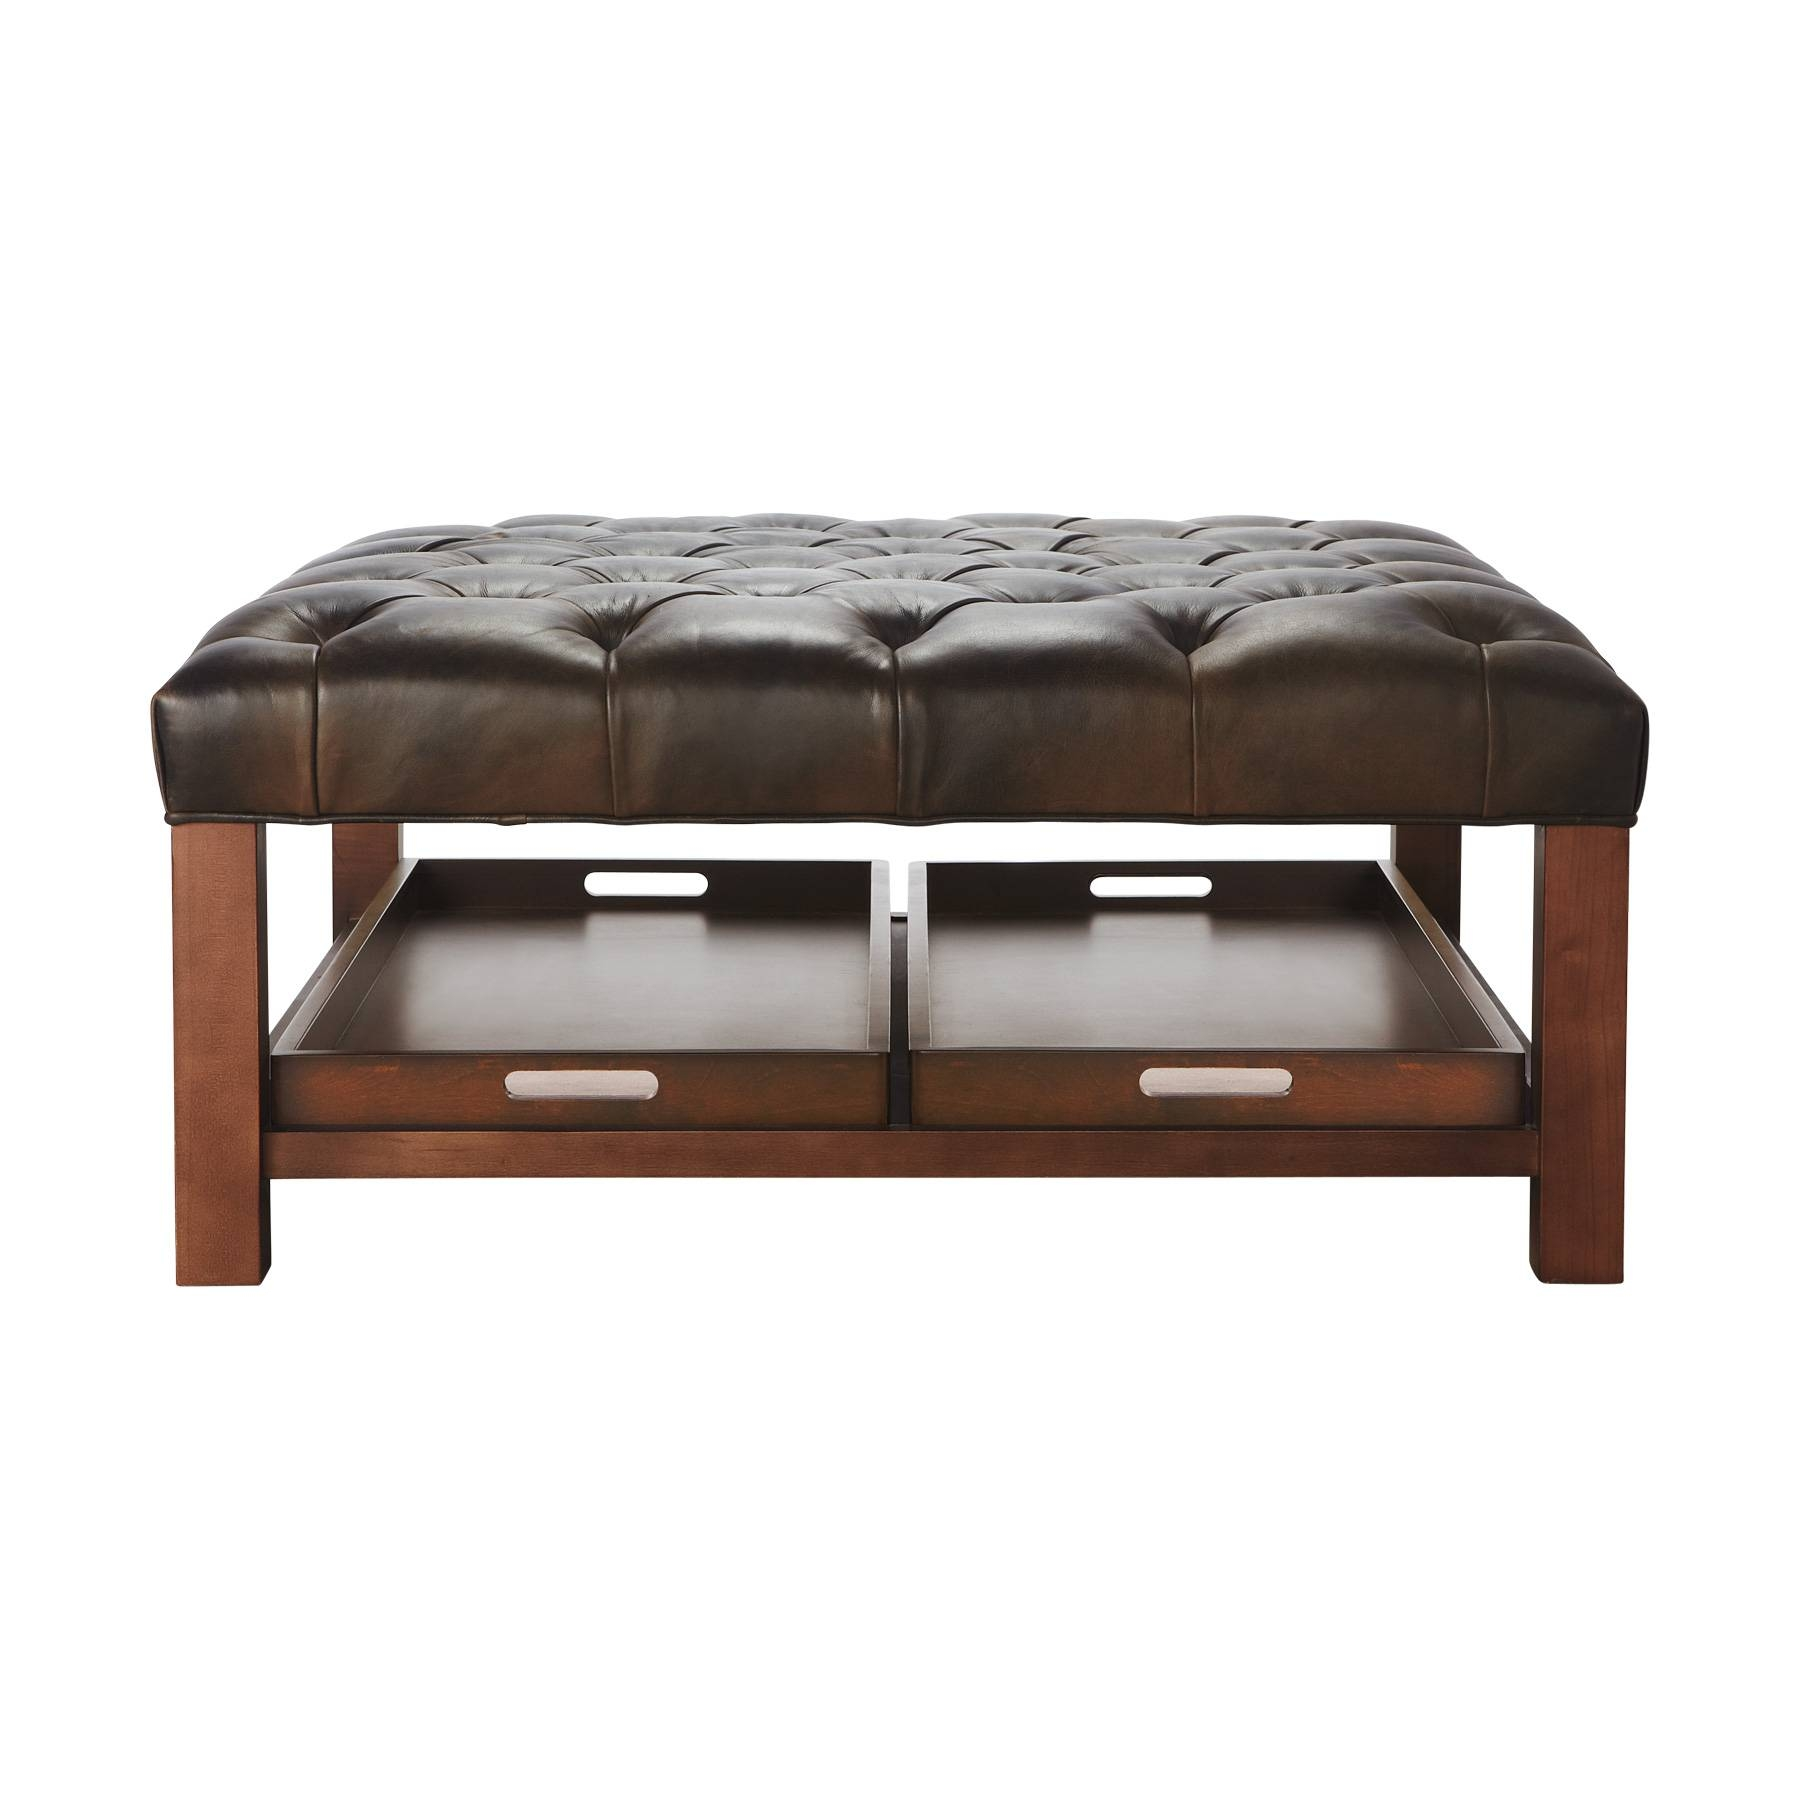 Brown Leather Ottoman Coffee Table With Storage | Coffee Tables For Brown Leather Ottoman Coffee Tables (View 6 of 30)